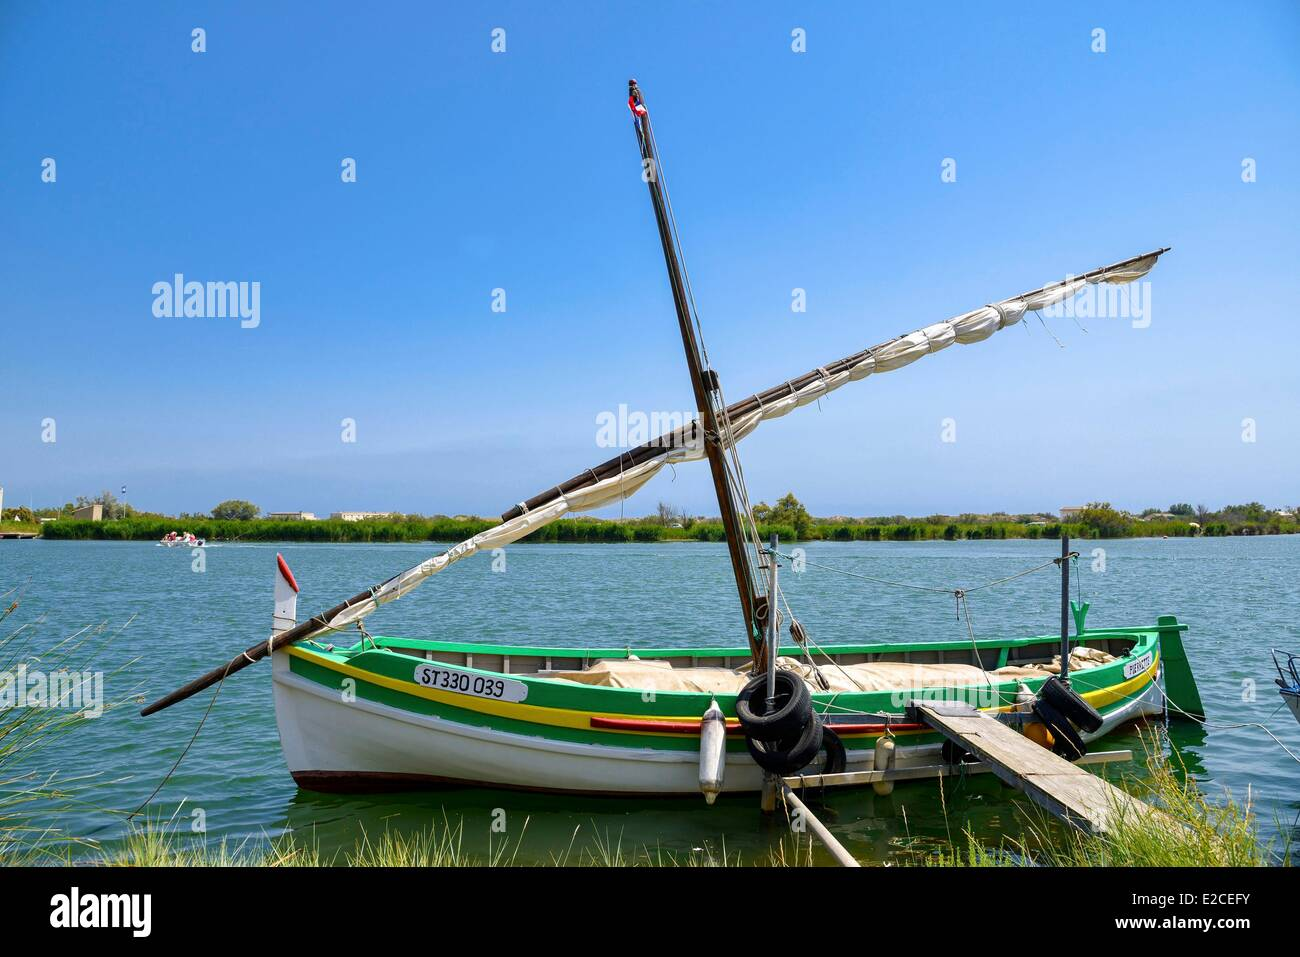 France, Herault, Valras Plage, lateen sail in front of Domaine des Orpellieres - Stock Image